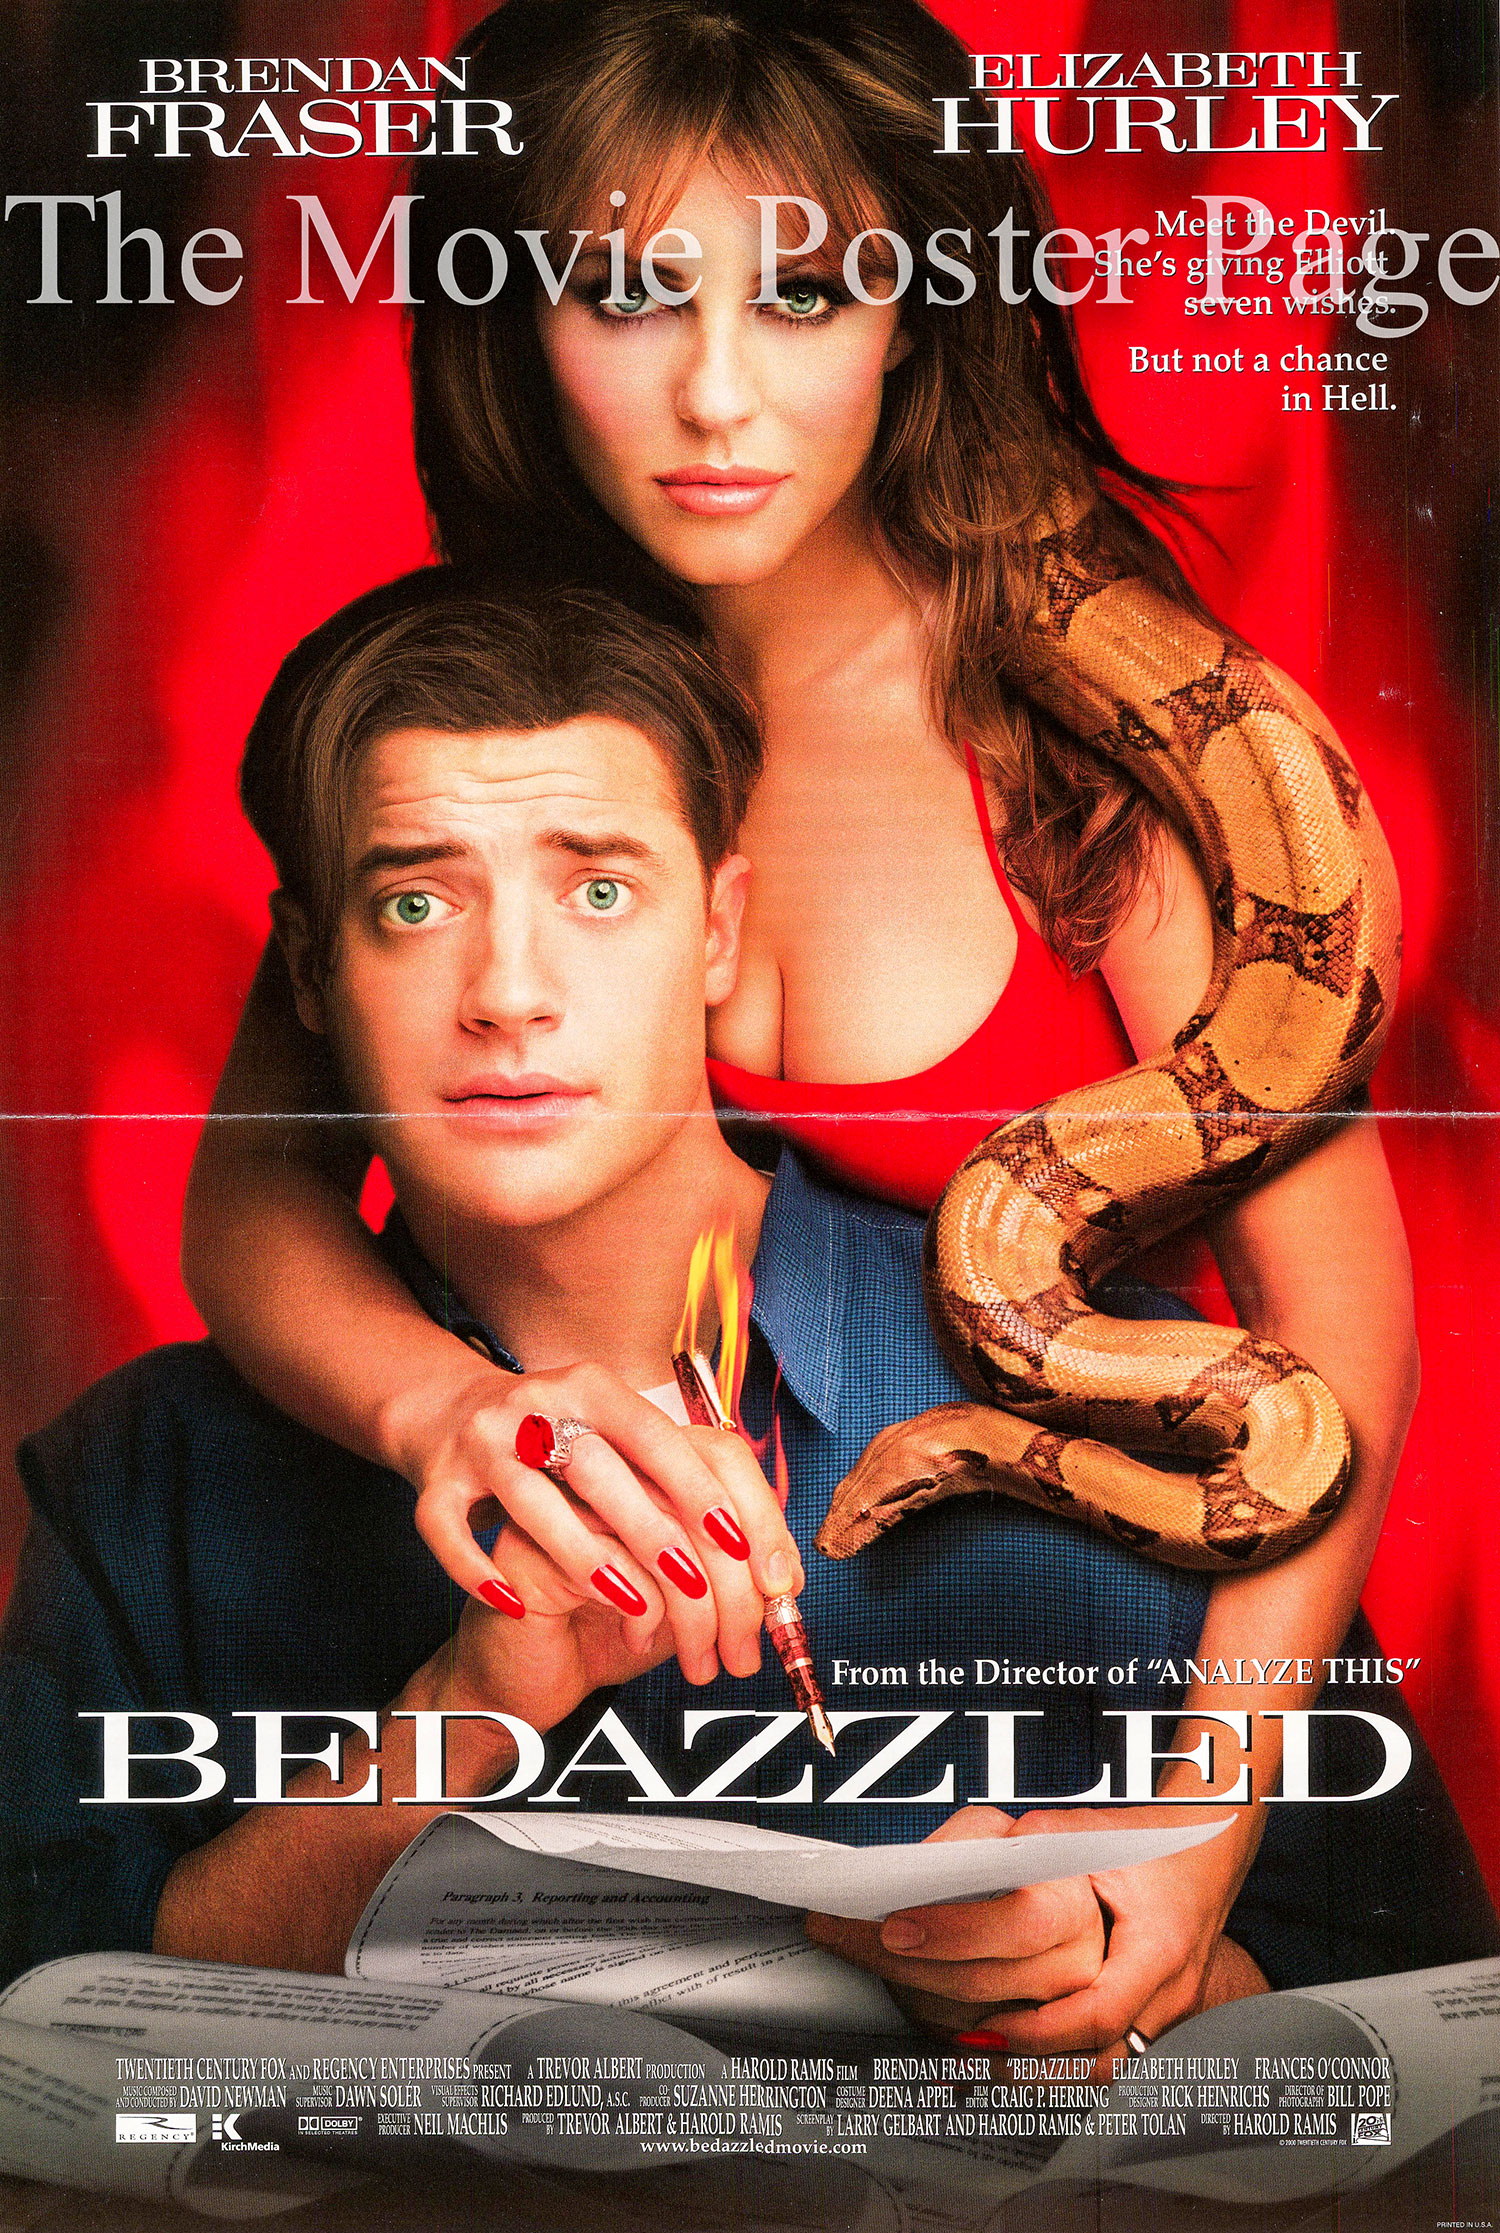 Pictured is a US mini-poster designed to promote the 2000 Harold Ramis film Bedazzled starring Brendan Fraser.